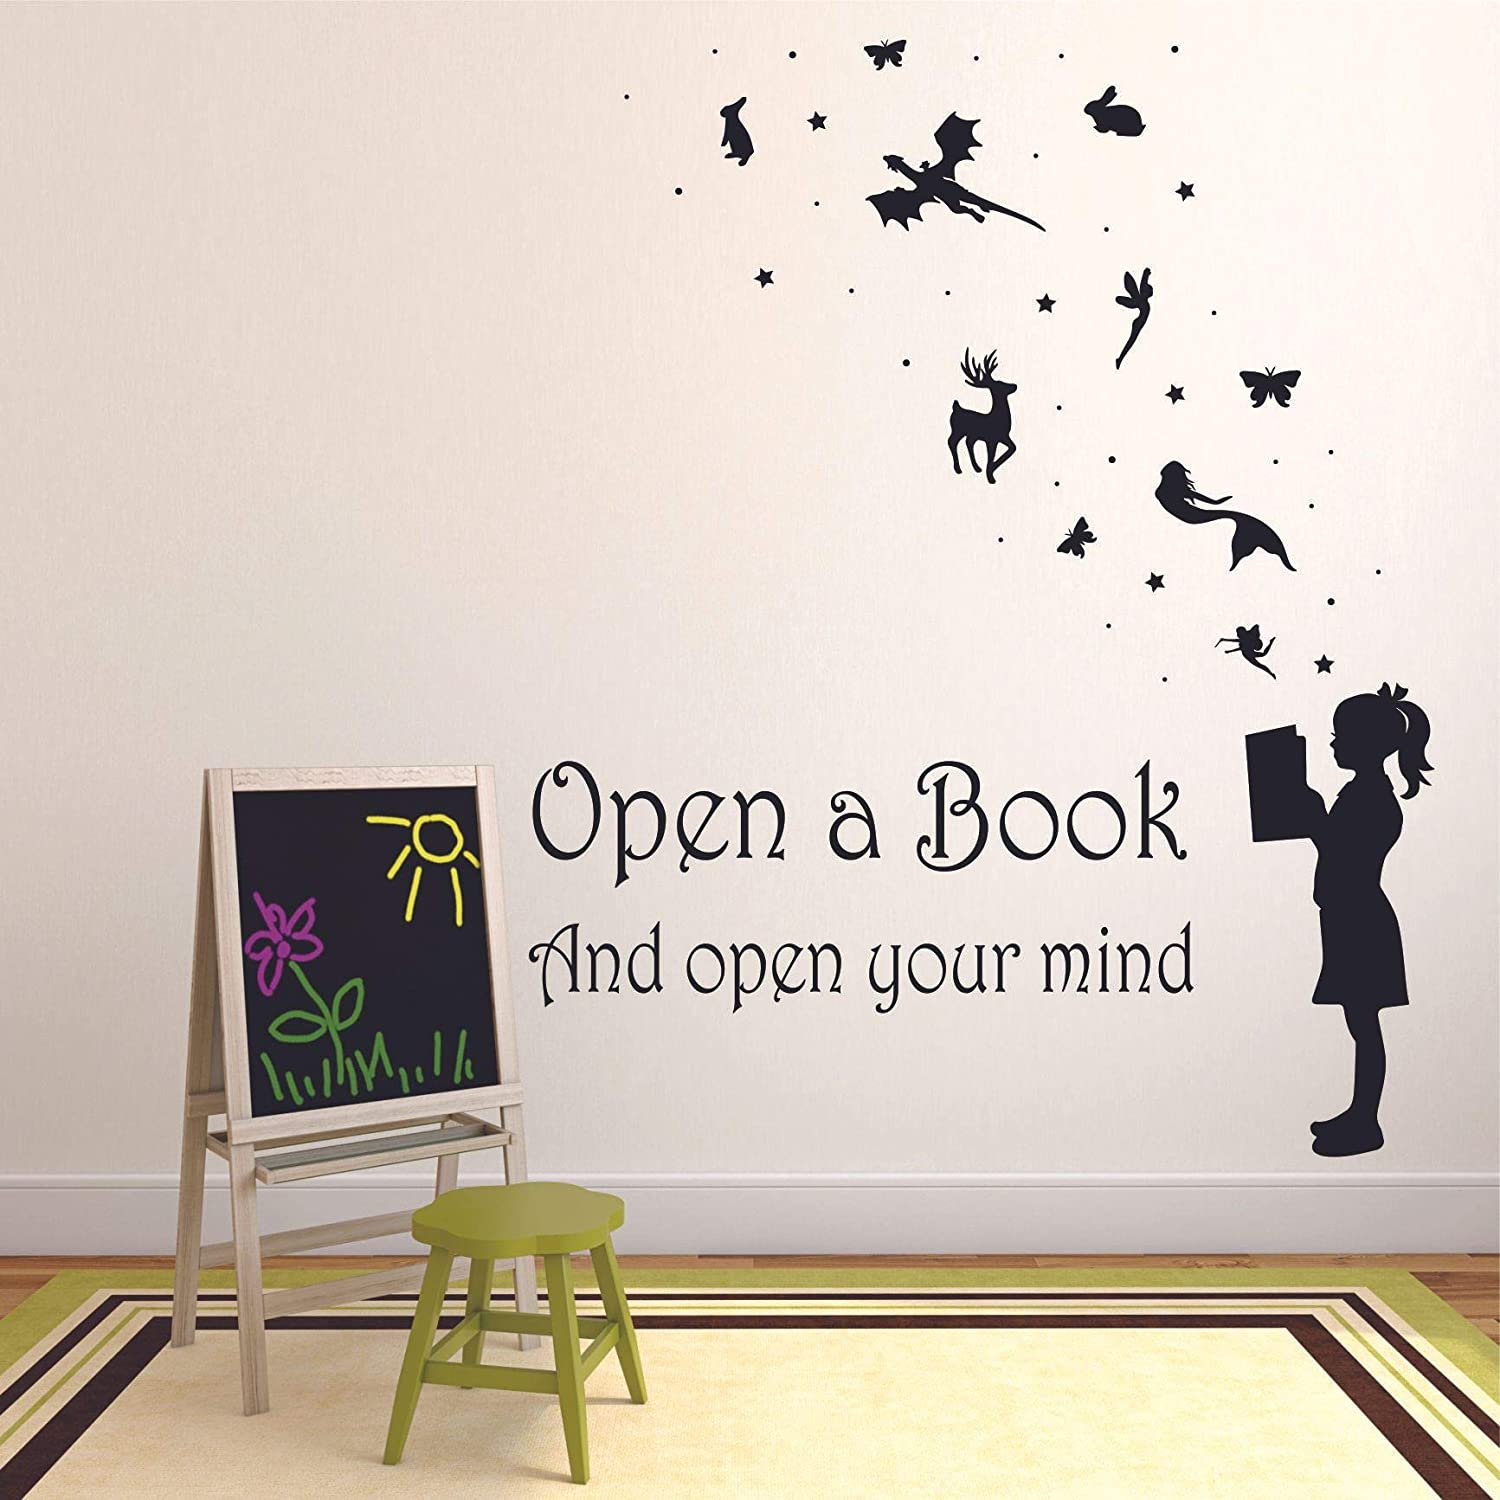 Amazon Com Reading Books Motivation Quotes Wall Sticker Vinyl Decal For Girls Boys Kids Library Bedroom Nursery Daycare Kindergarten Story Fun Home Decor Sticker Wall Art Vinyl Decoration Size 30x25 Inch Home